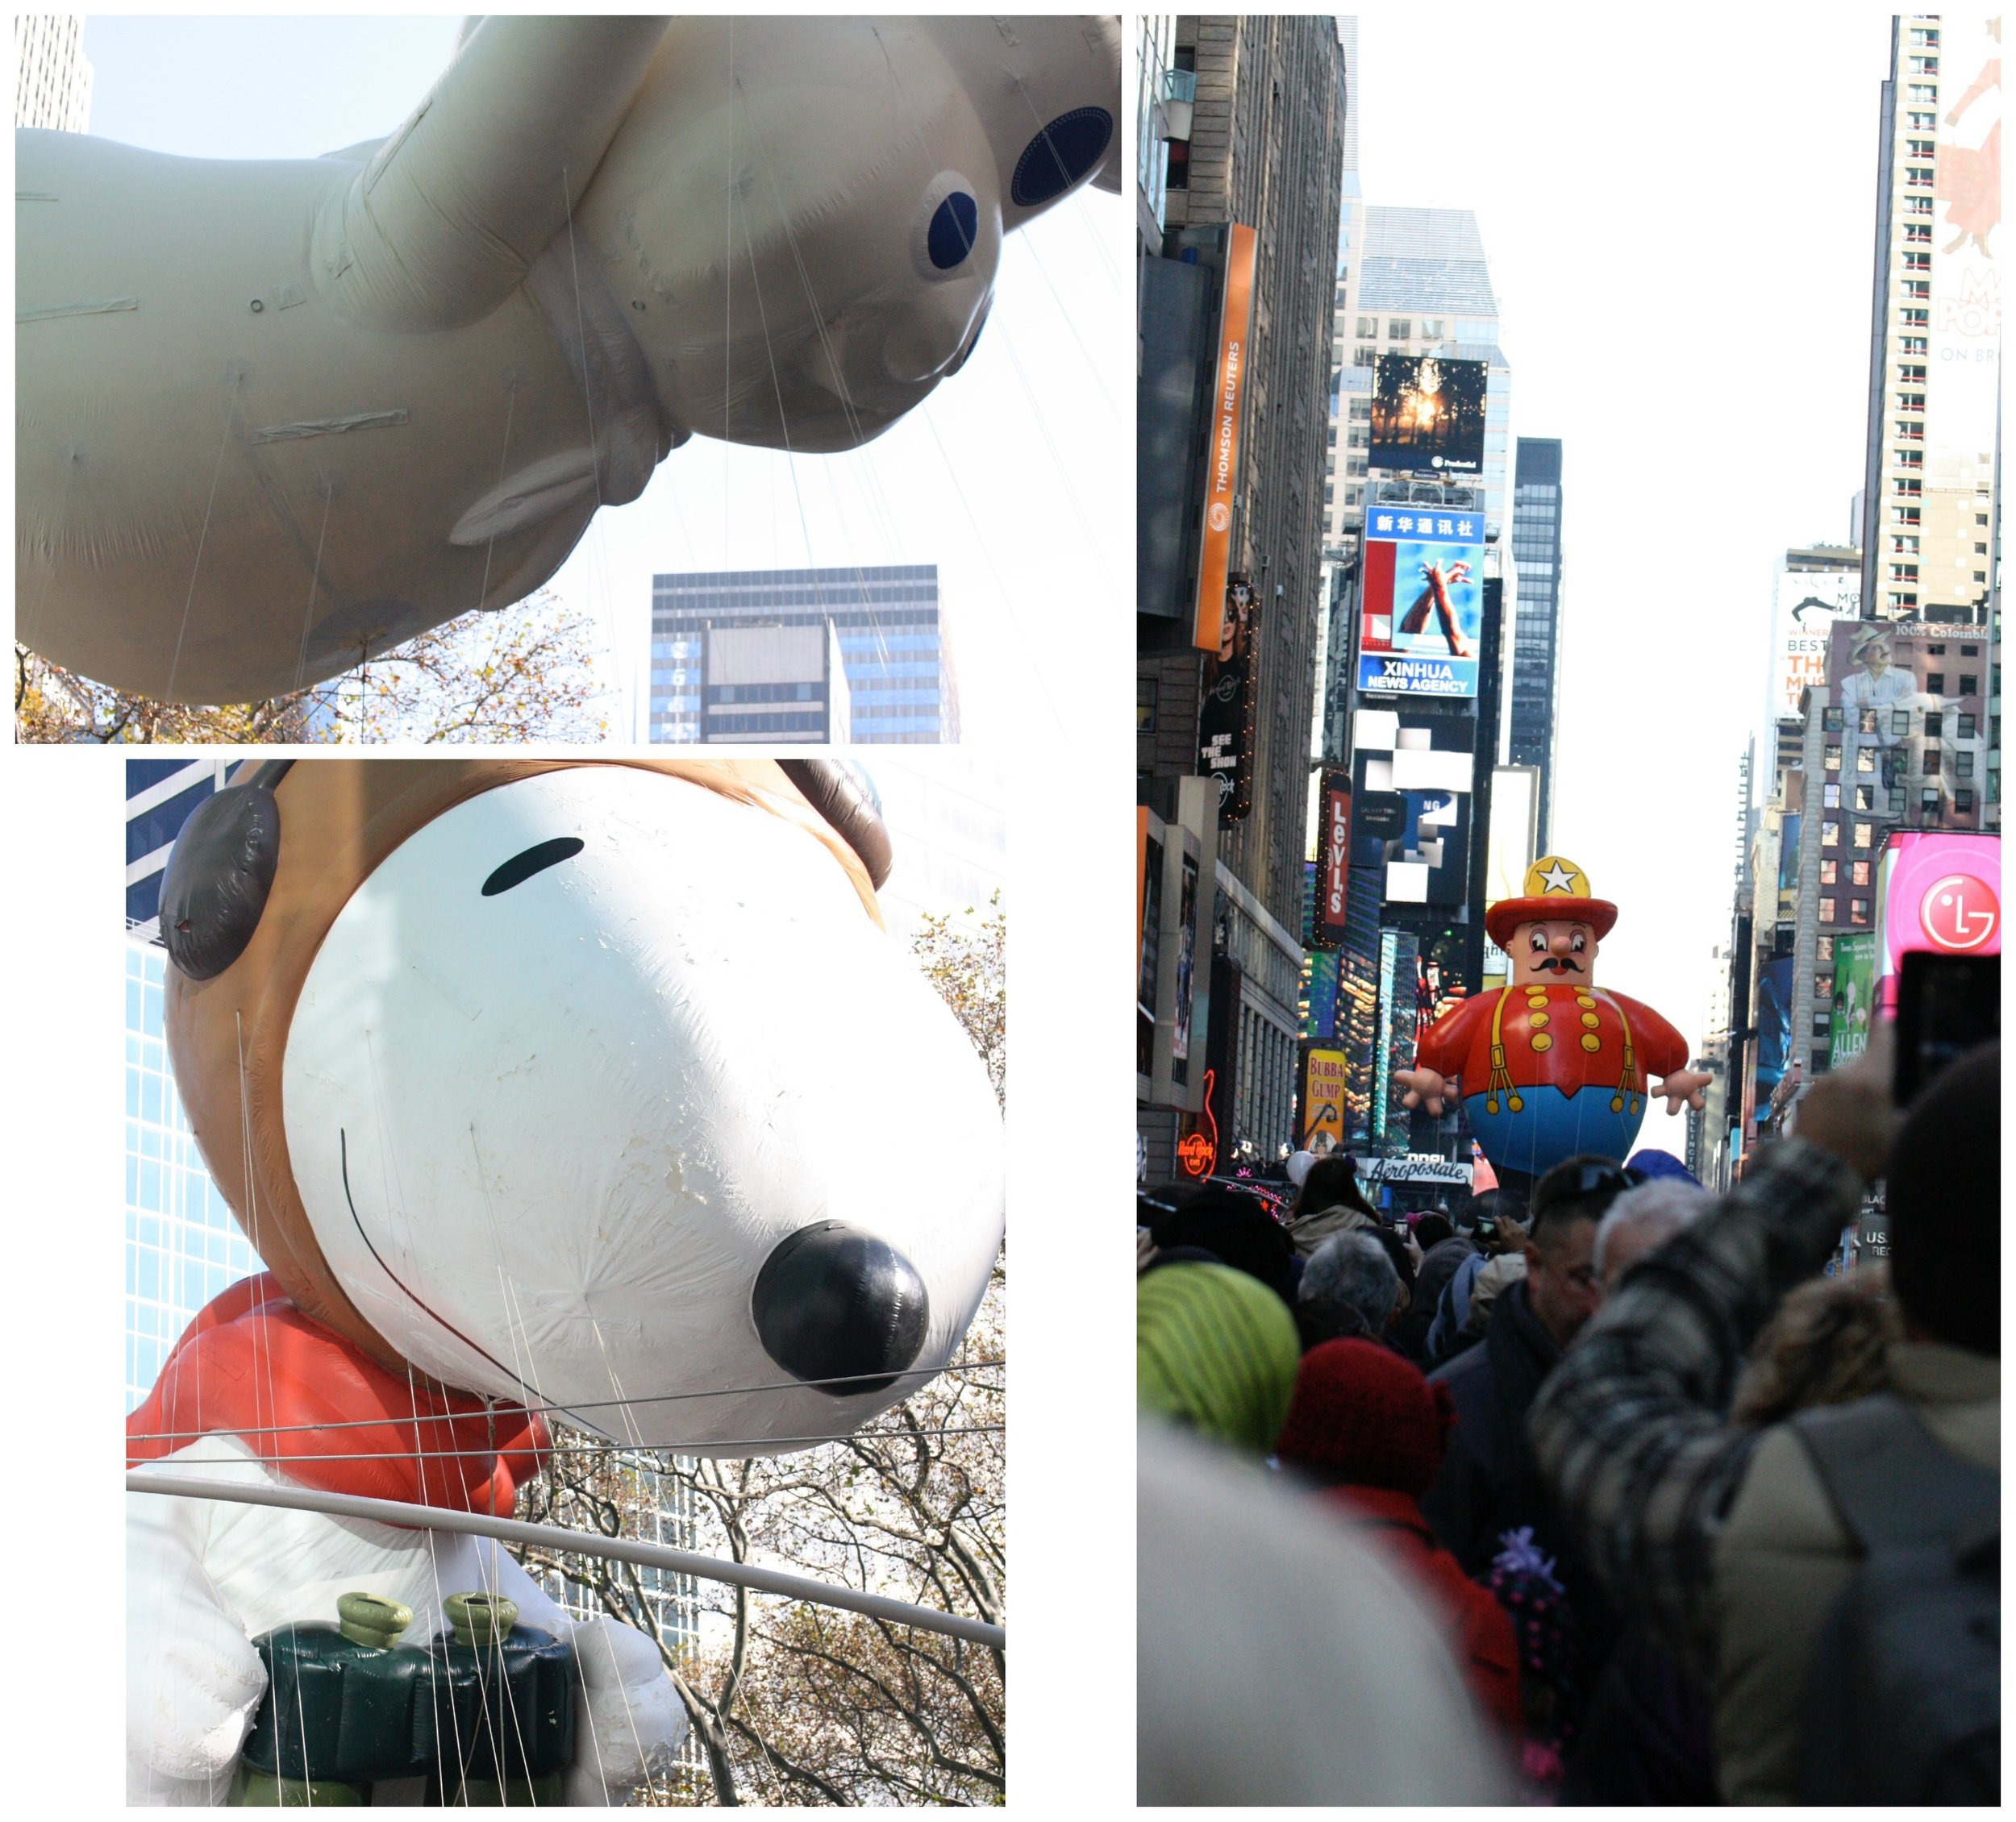 The Macy's Thanksgiving Day Parade is one of the most iconic New York City outdoor sights. Don't miss it!